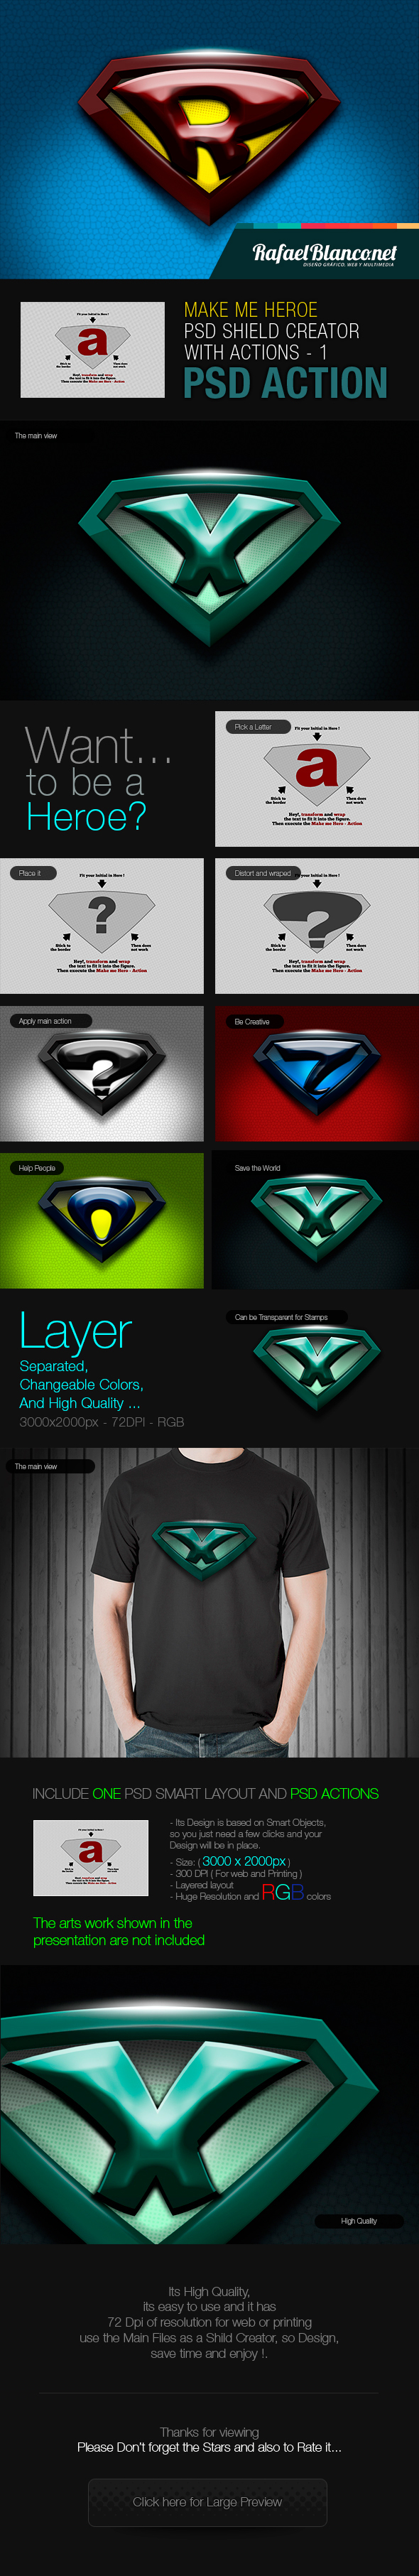 Superhero Shield Creator With Actions - Text Effects Actions